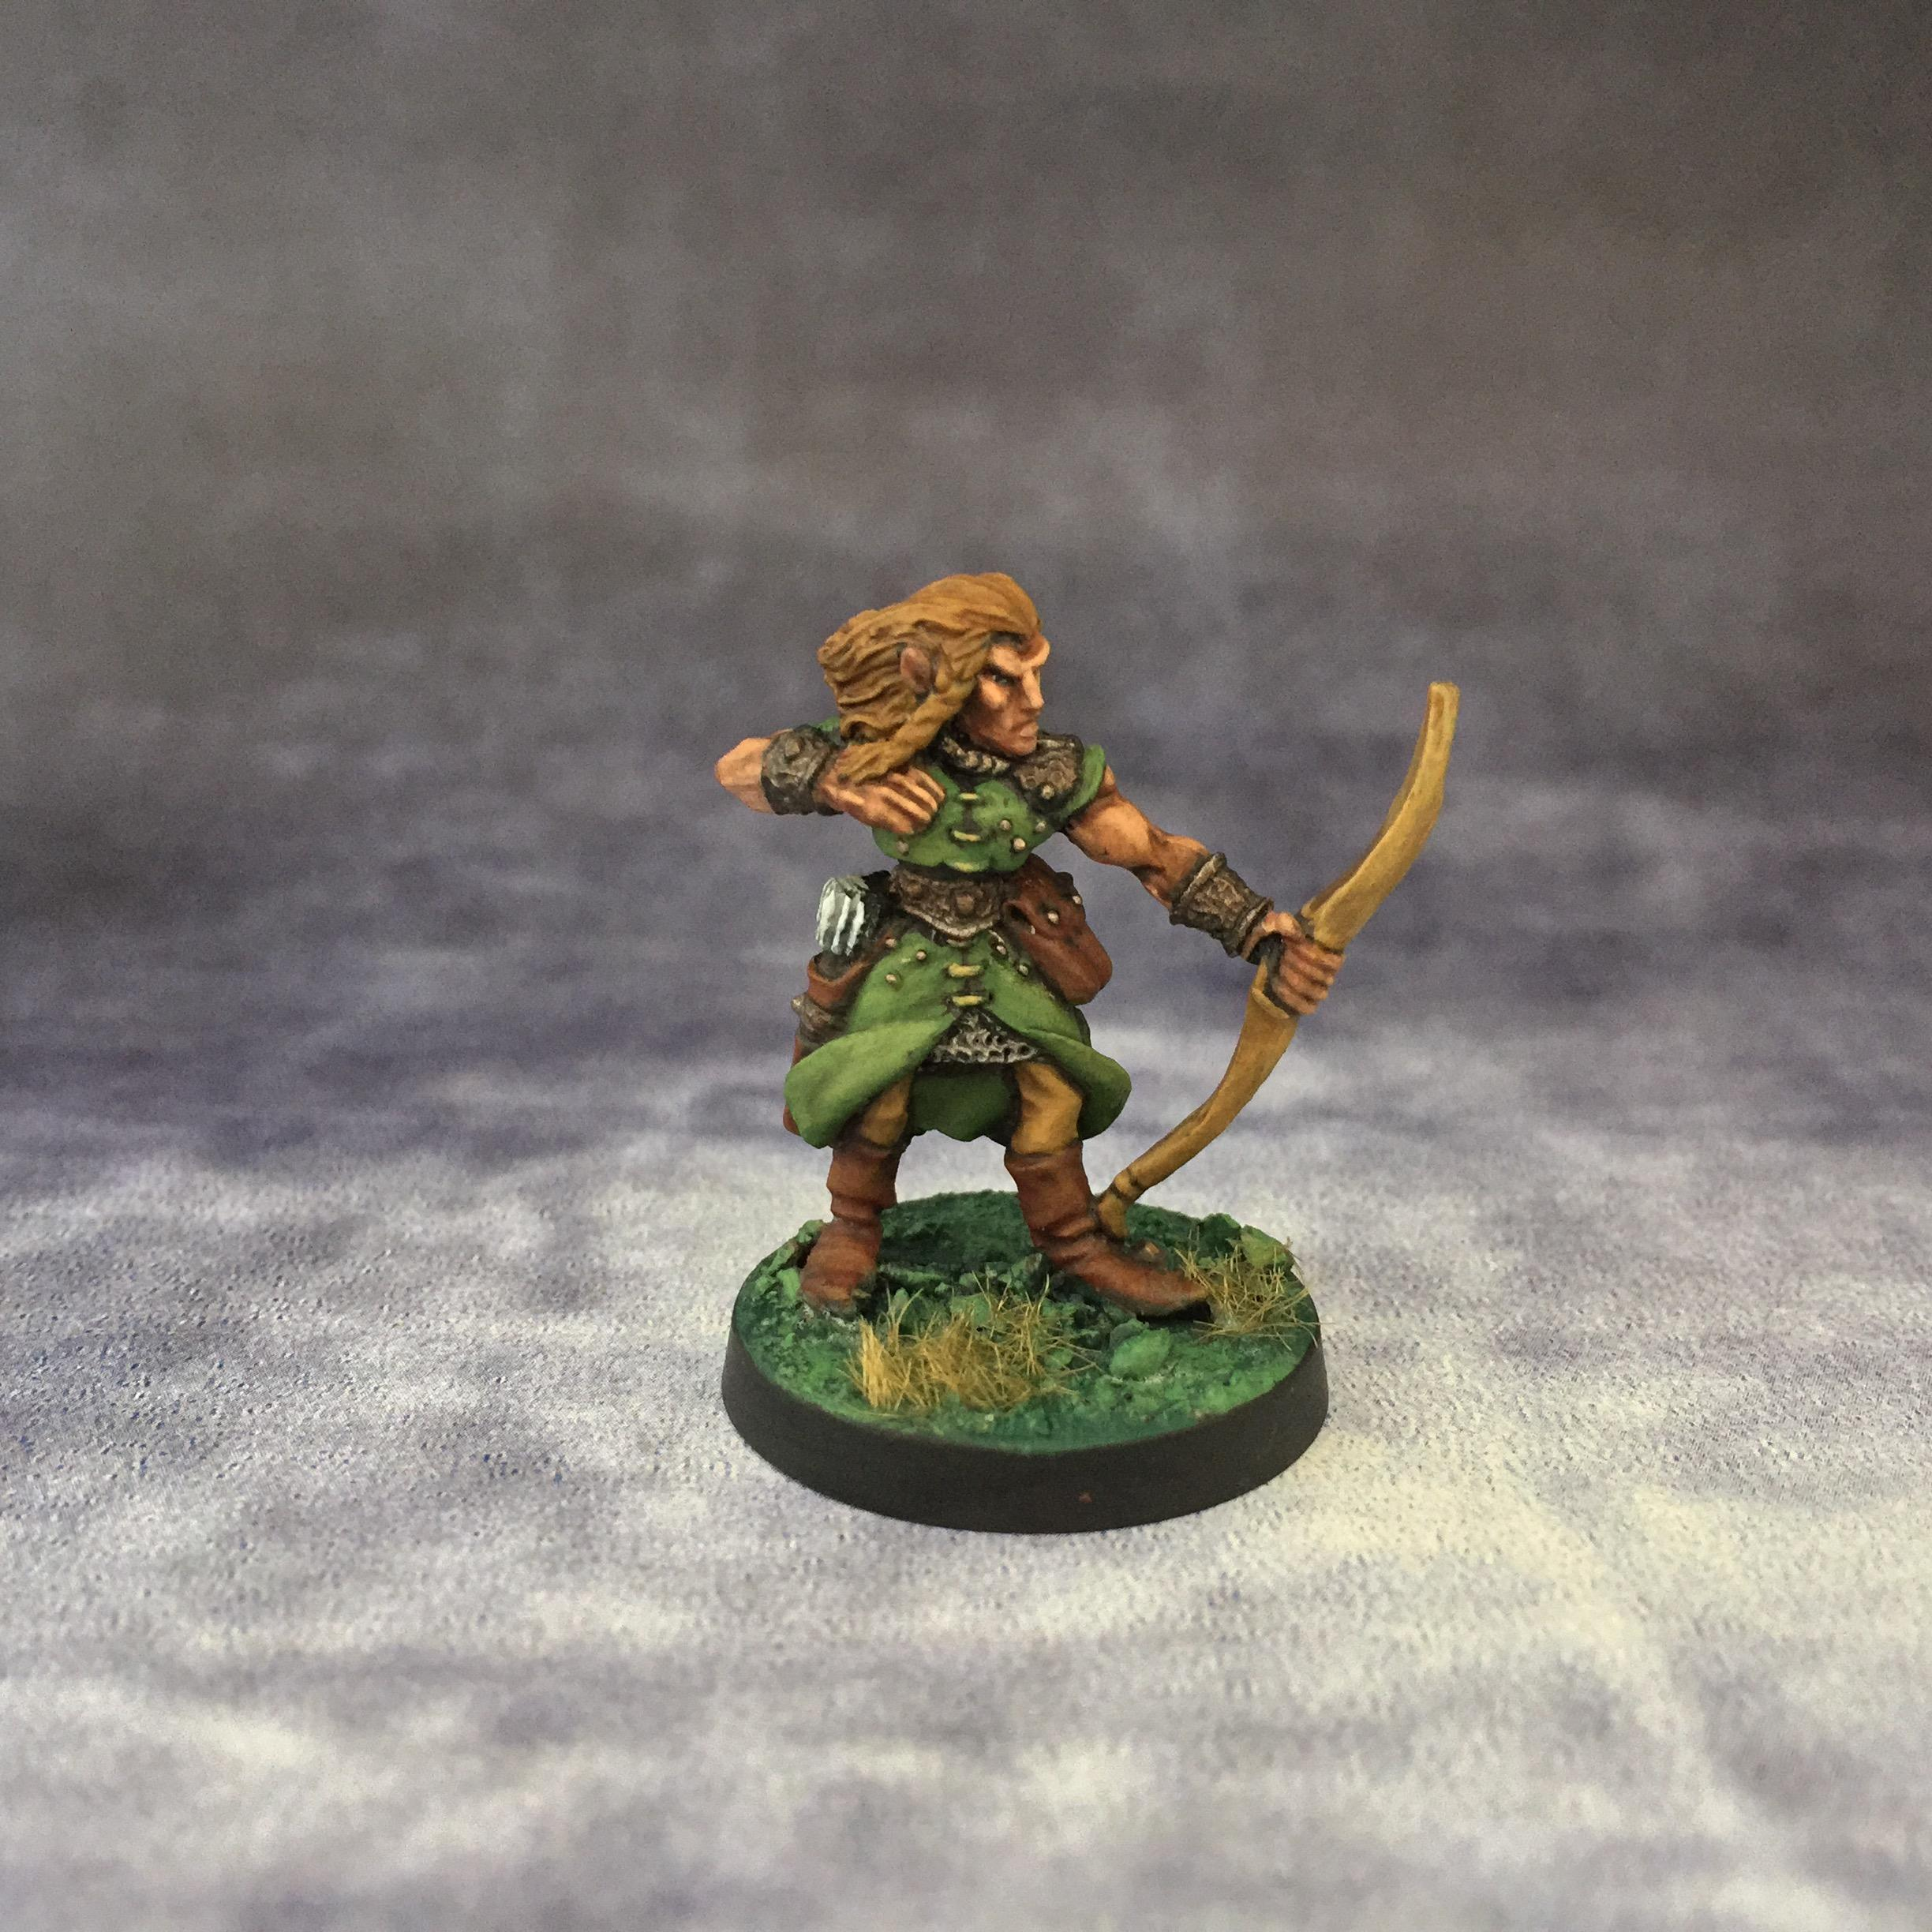 Archers, Citadel, Elves, Games Workshop, Jes Goodwin, June 2017, Oldhammer